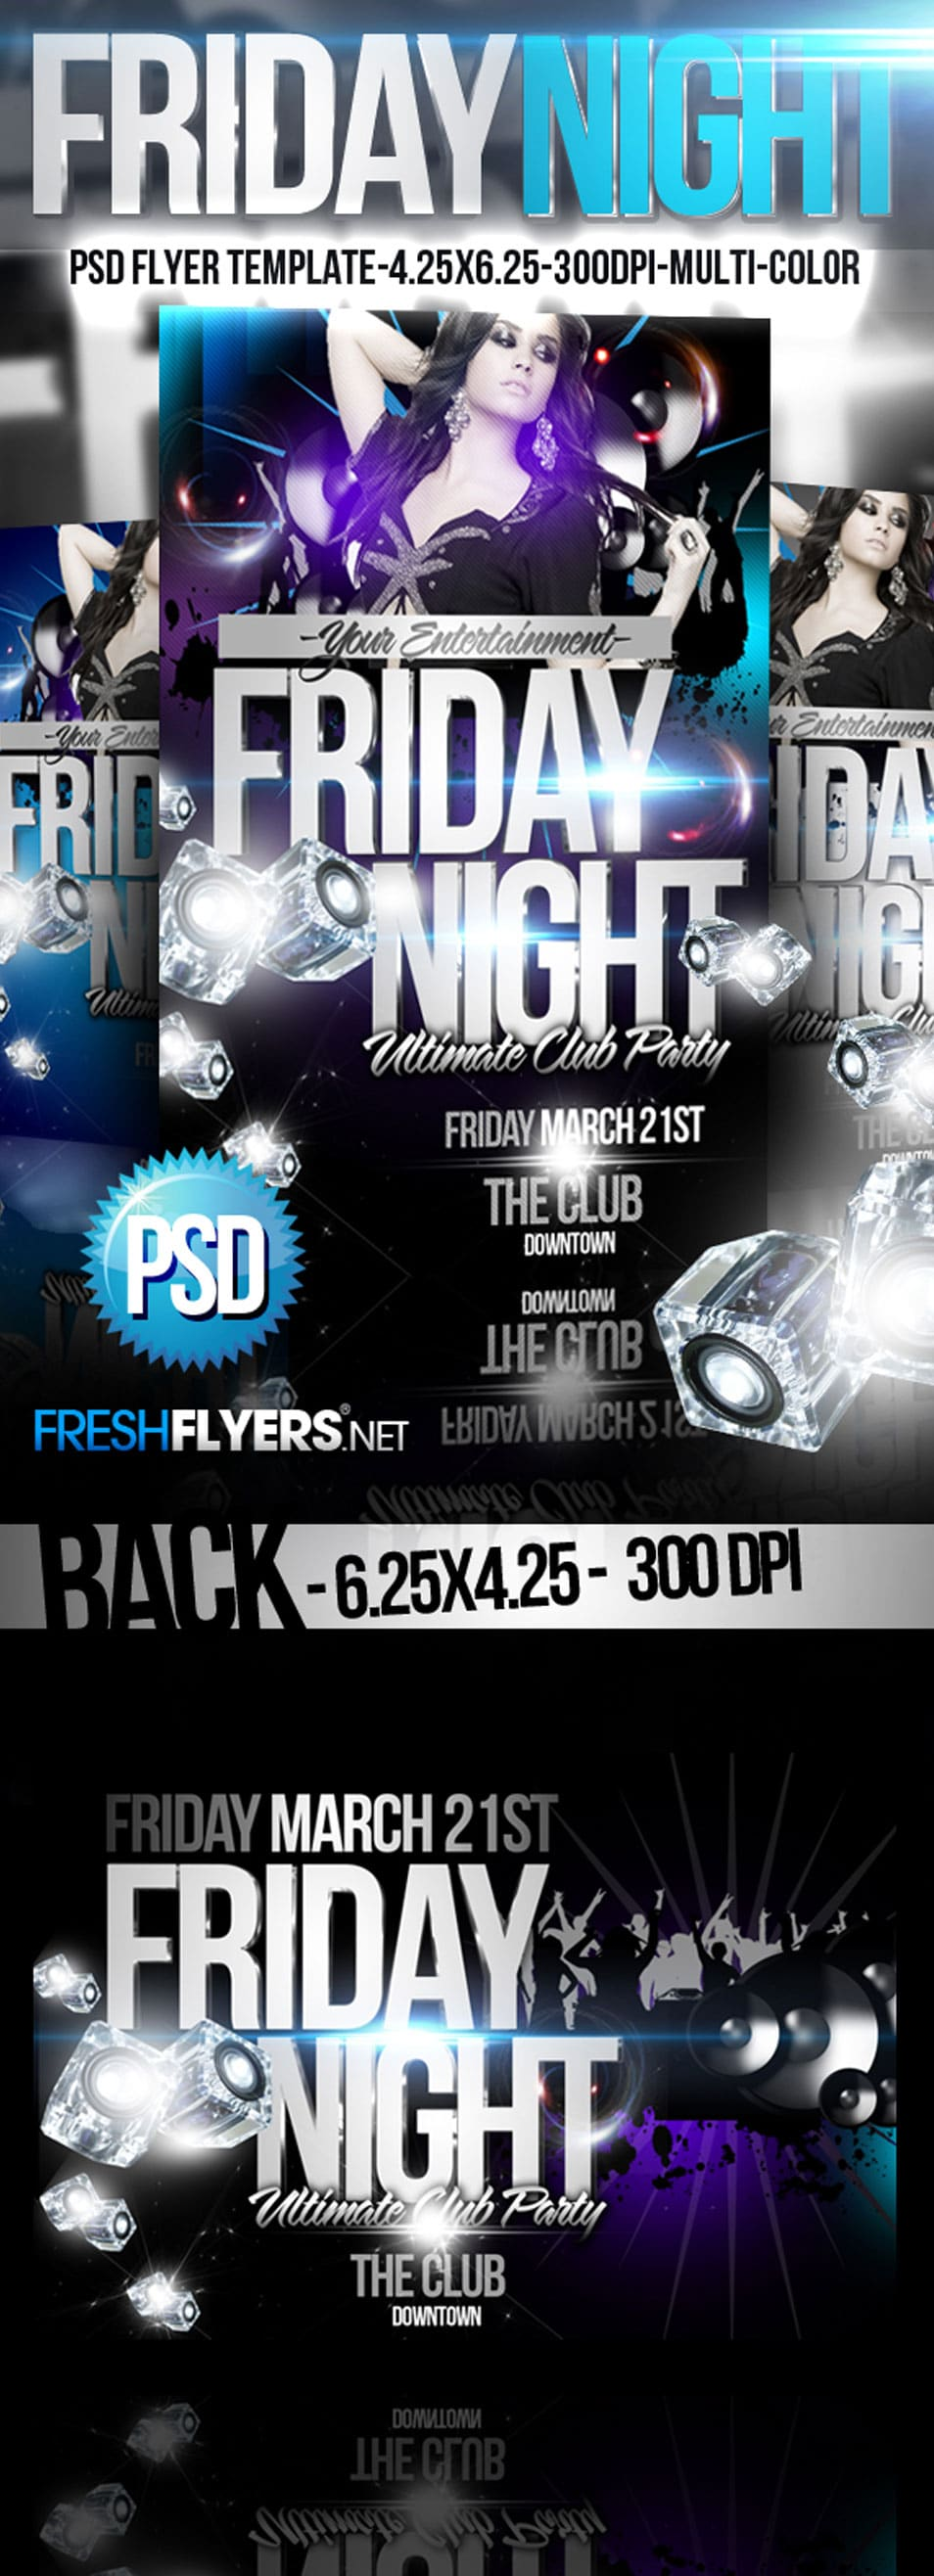 Friday Night PSD Flyer Template